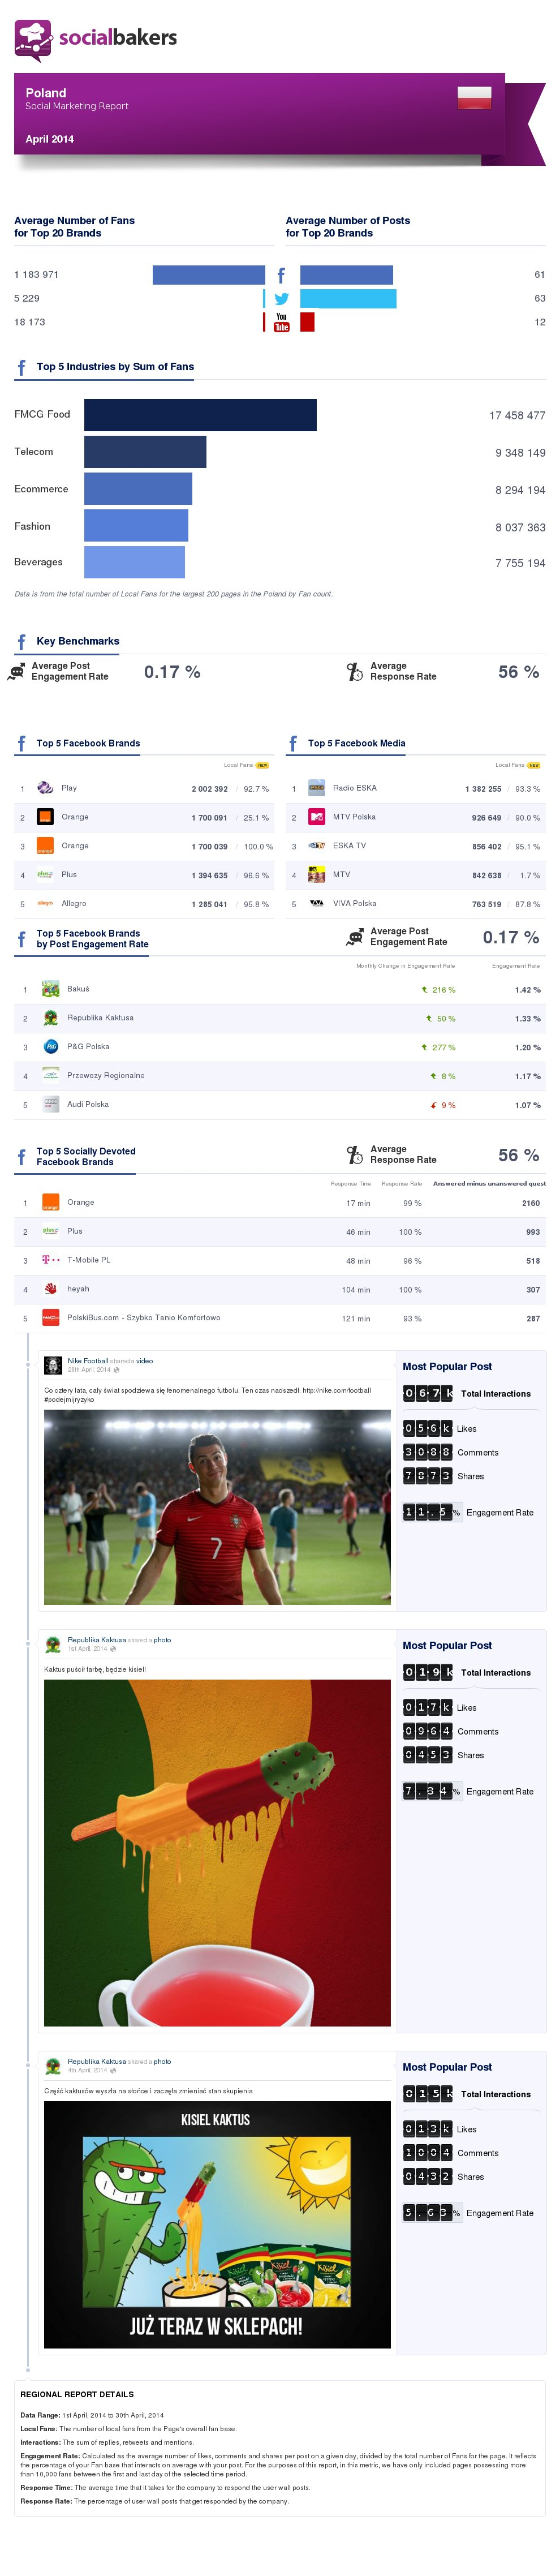 april-2014-social-marketing-report-poland-regional-thumbnail